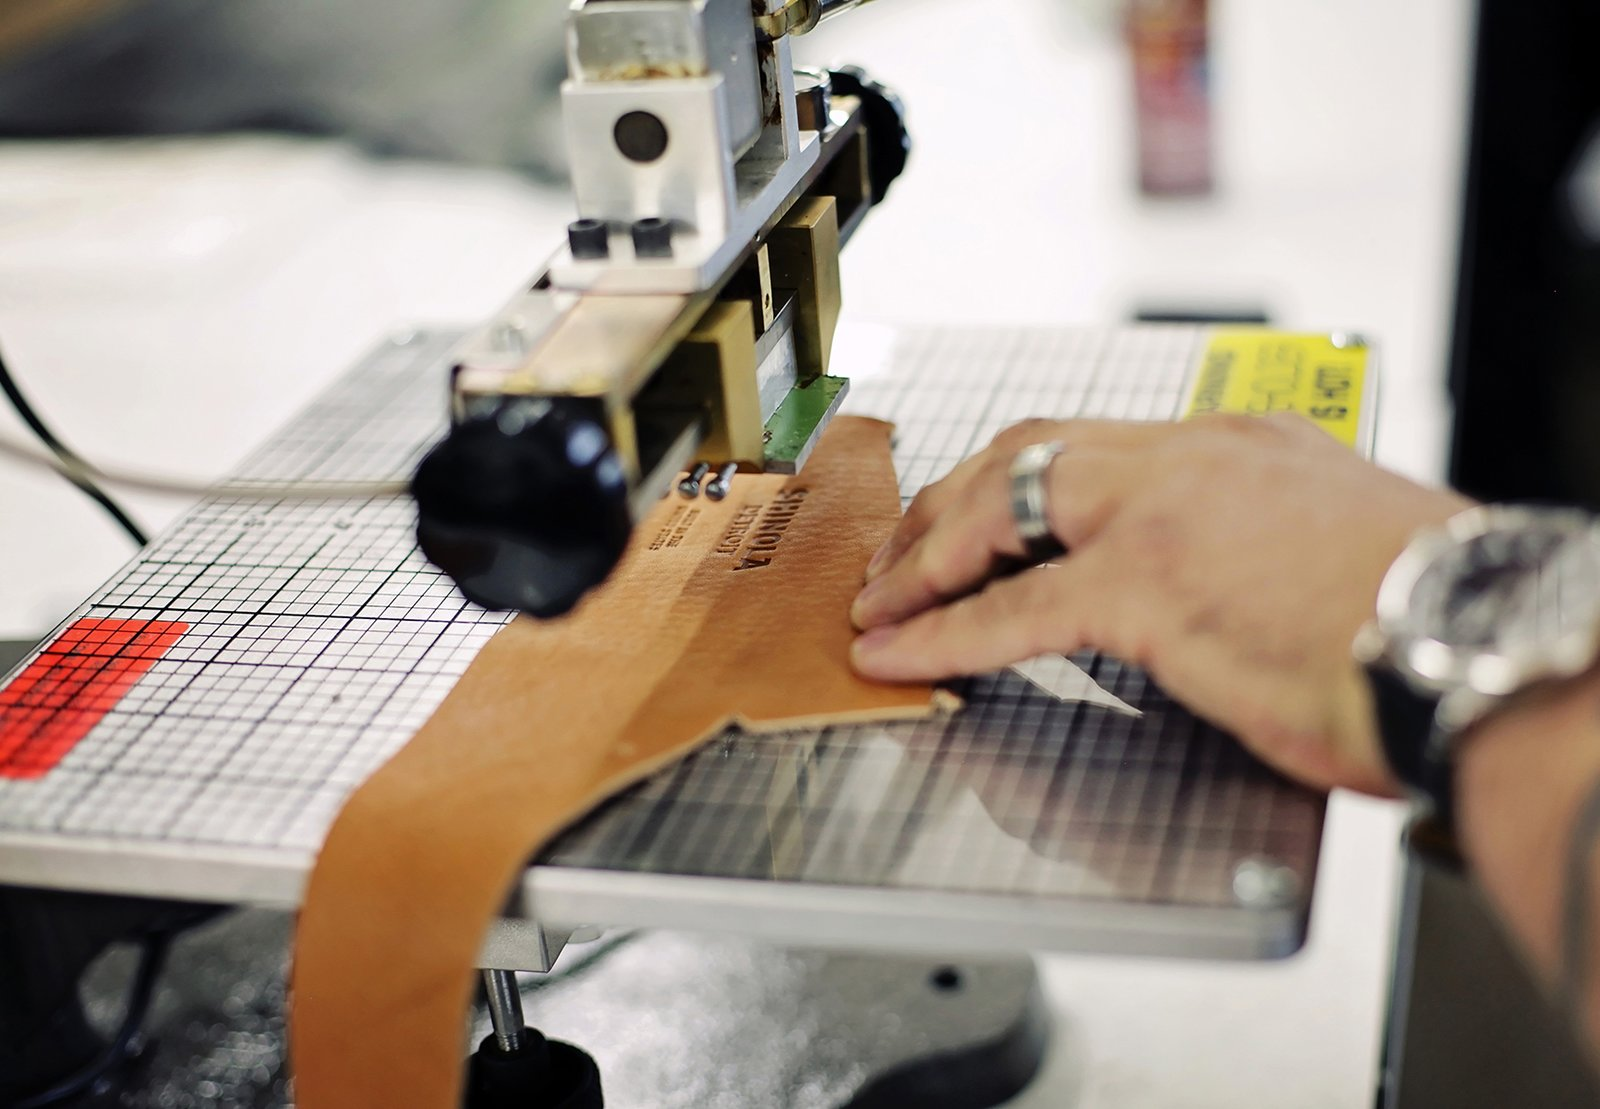 Italian company Galli S.P.A. custom made the machinery in the 12,000-square-foot workshop based on specifications needed to produce Shinola's designs. Photo courtesy of Shinola.  Photo 2 of 6 in Shinola Expands its Detroit Manufacturing Space